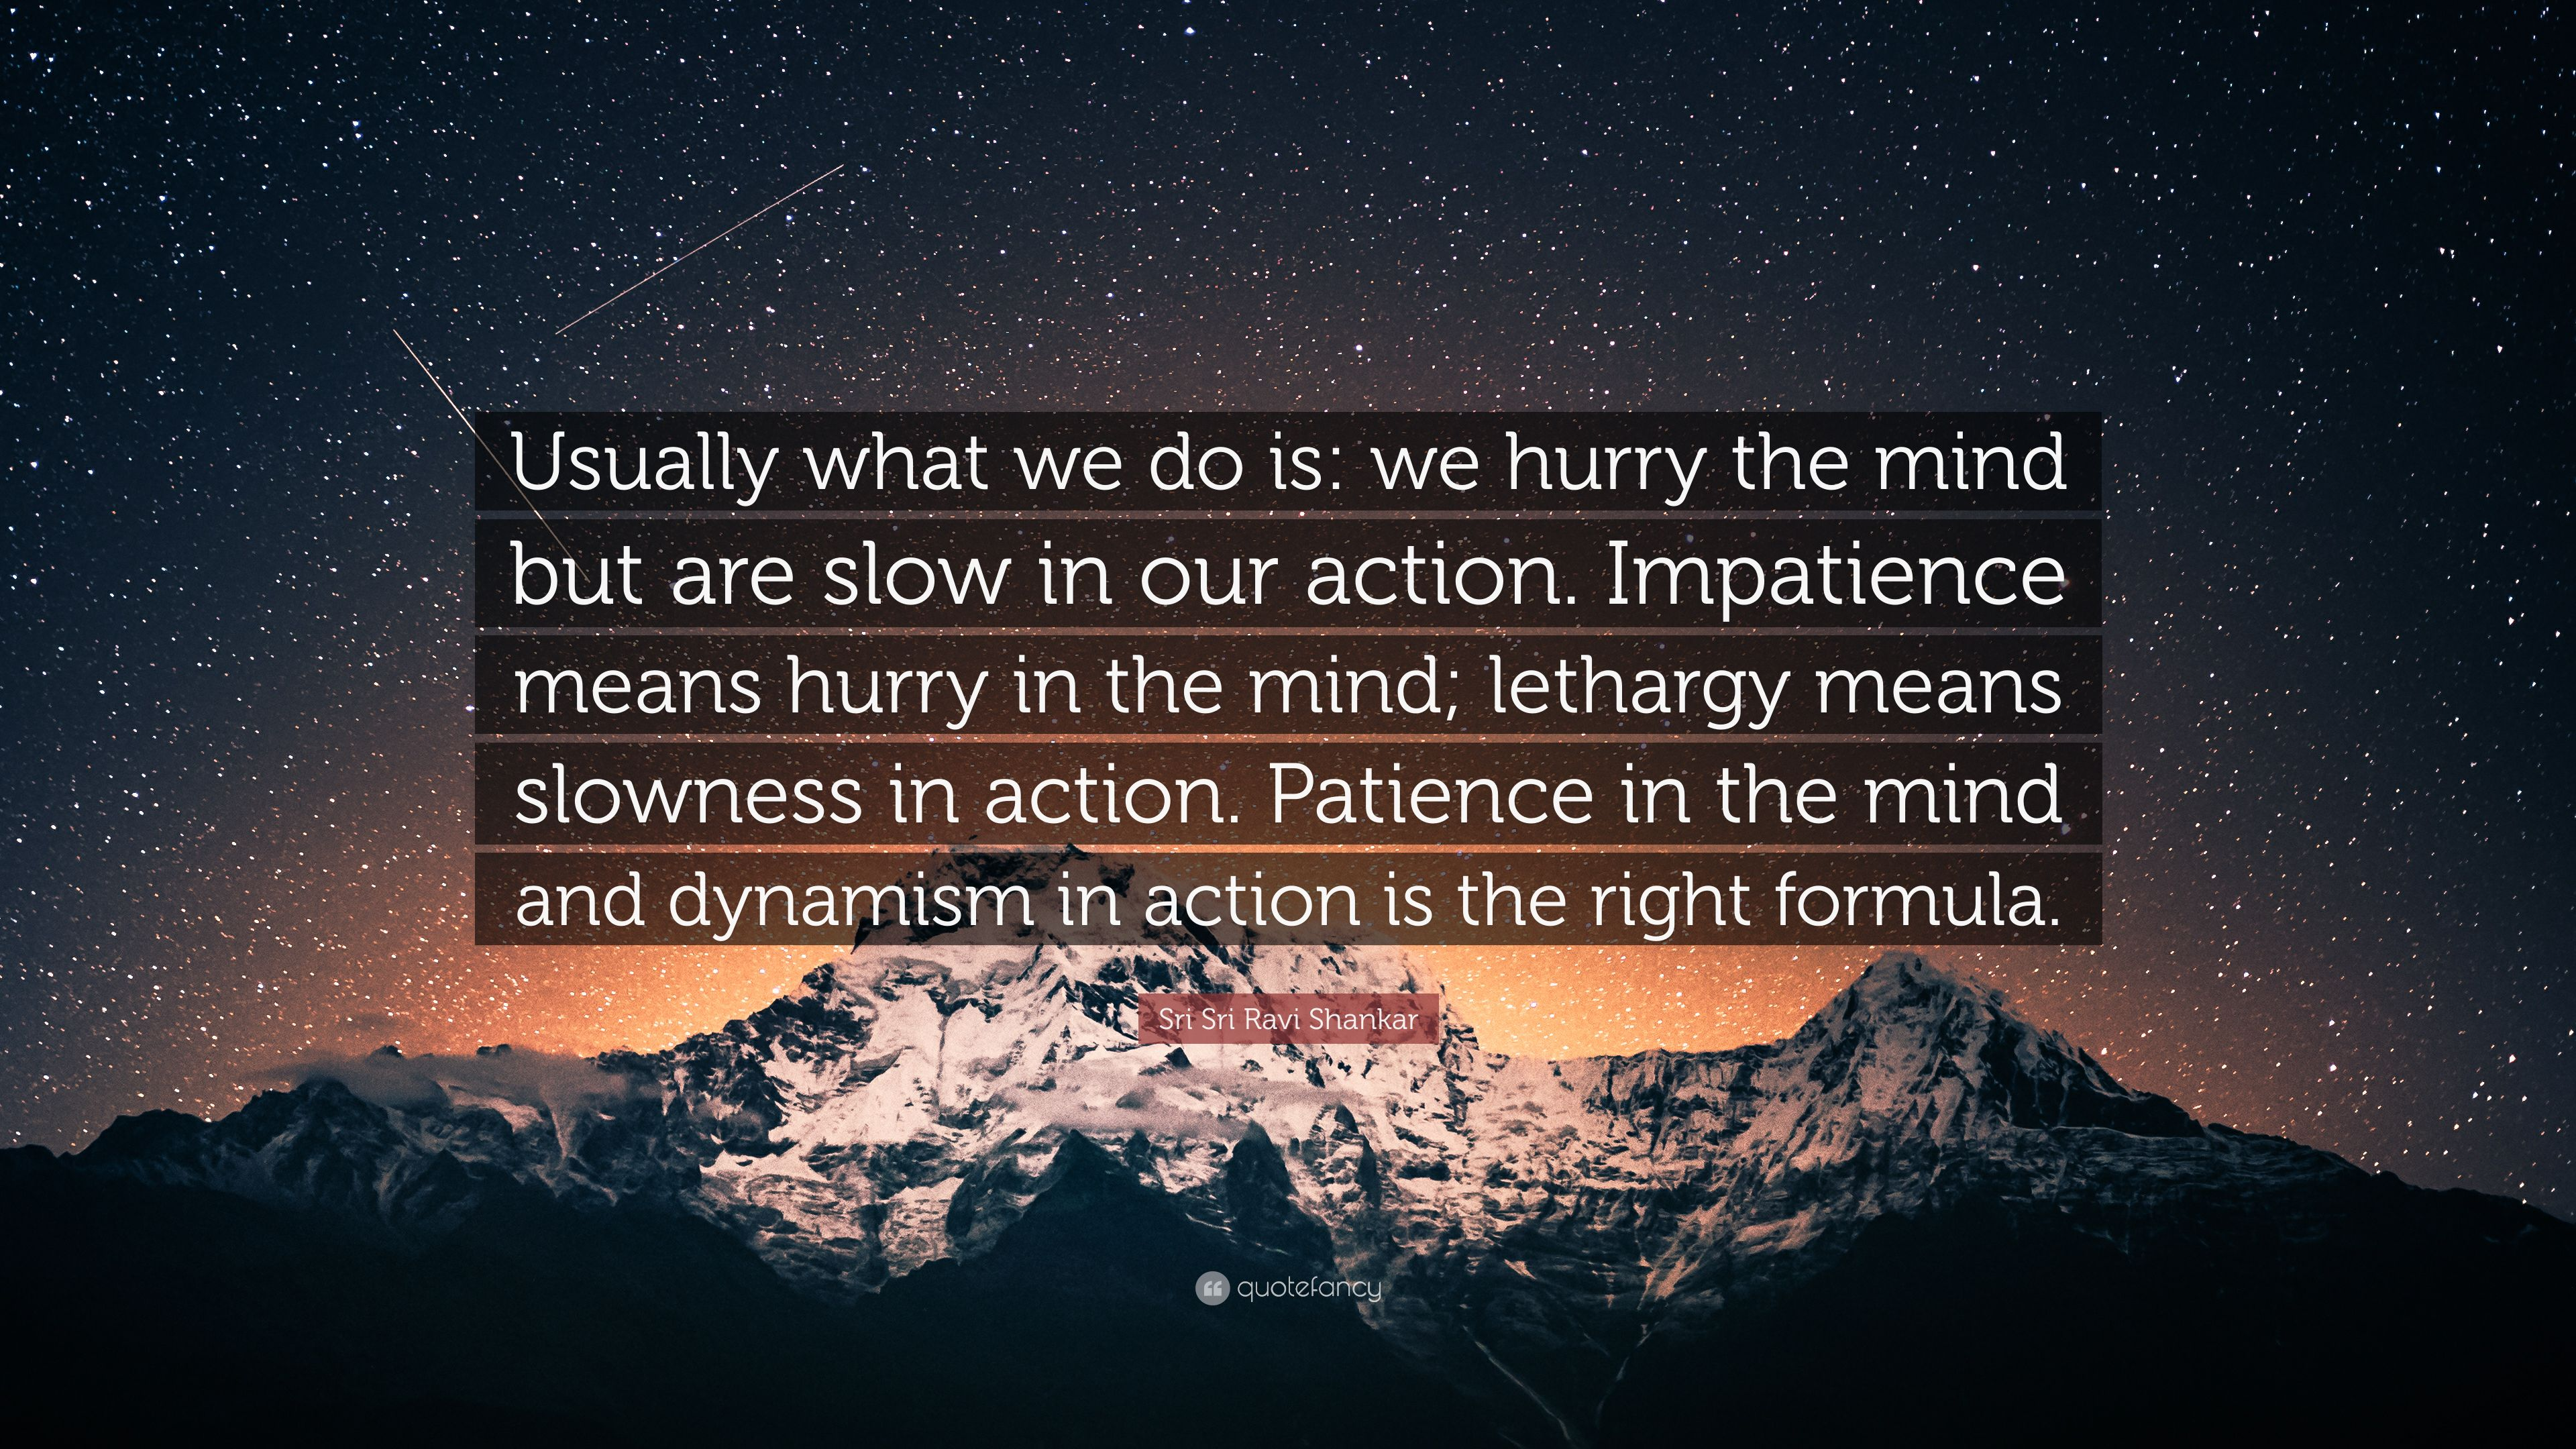 Sri Sri Ravi Shankar Quote Usually What We Do Is We Hurry The